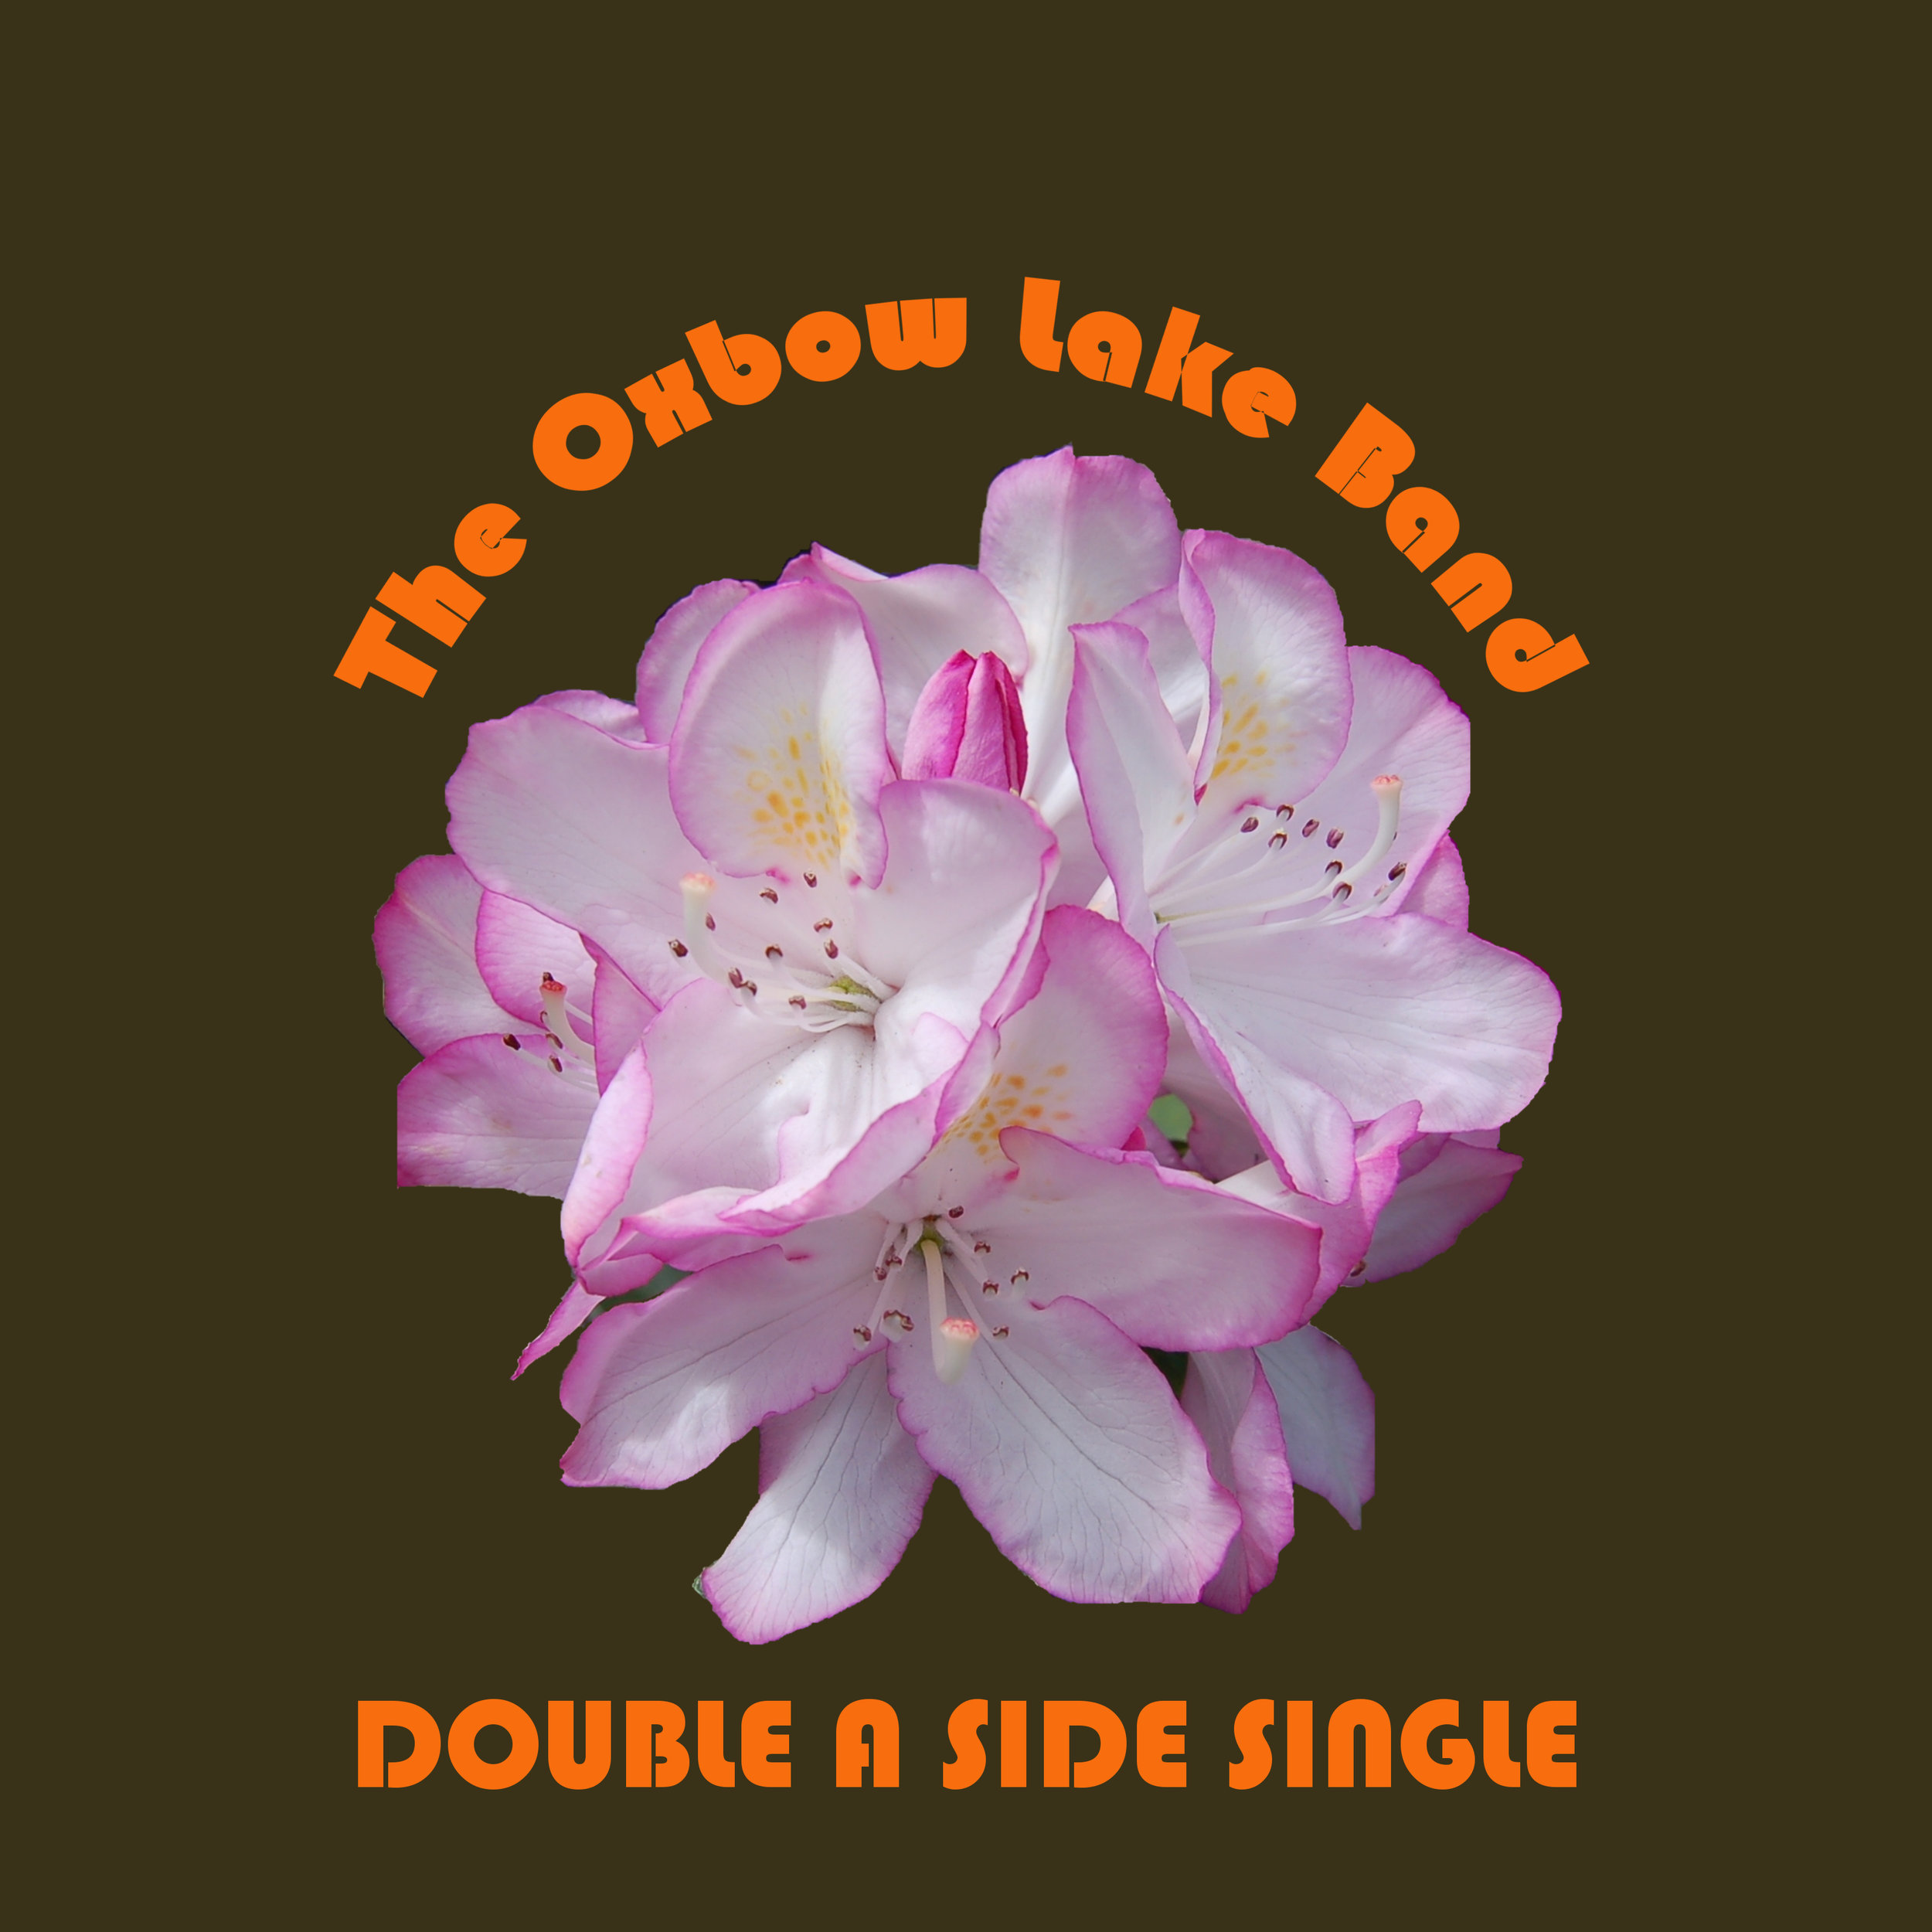 Double A side single coming out 1st June 2019